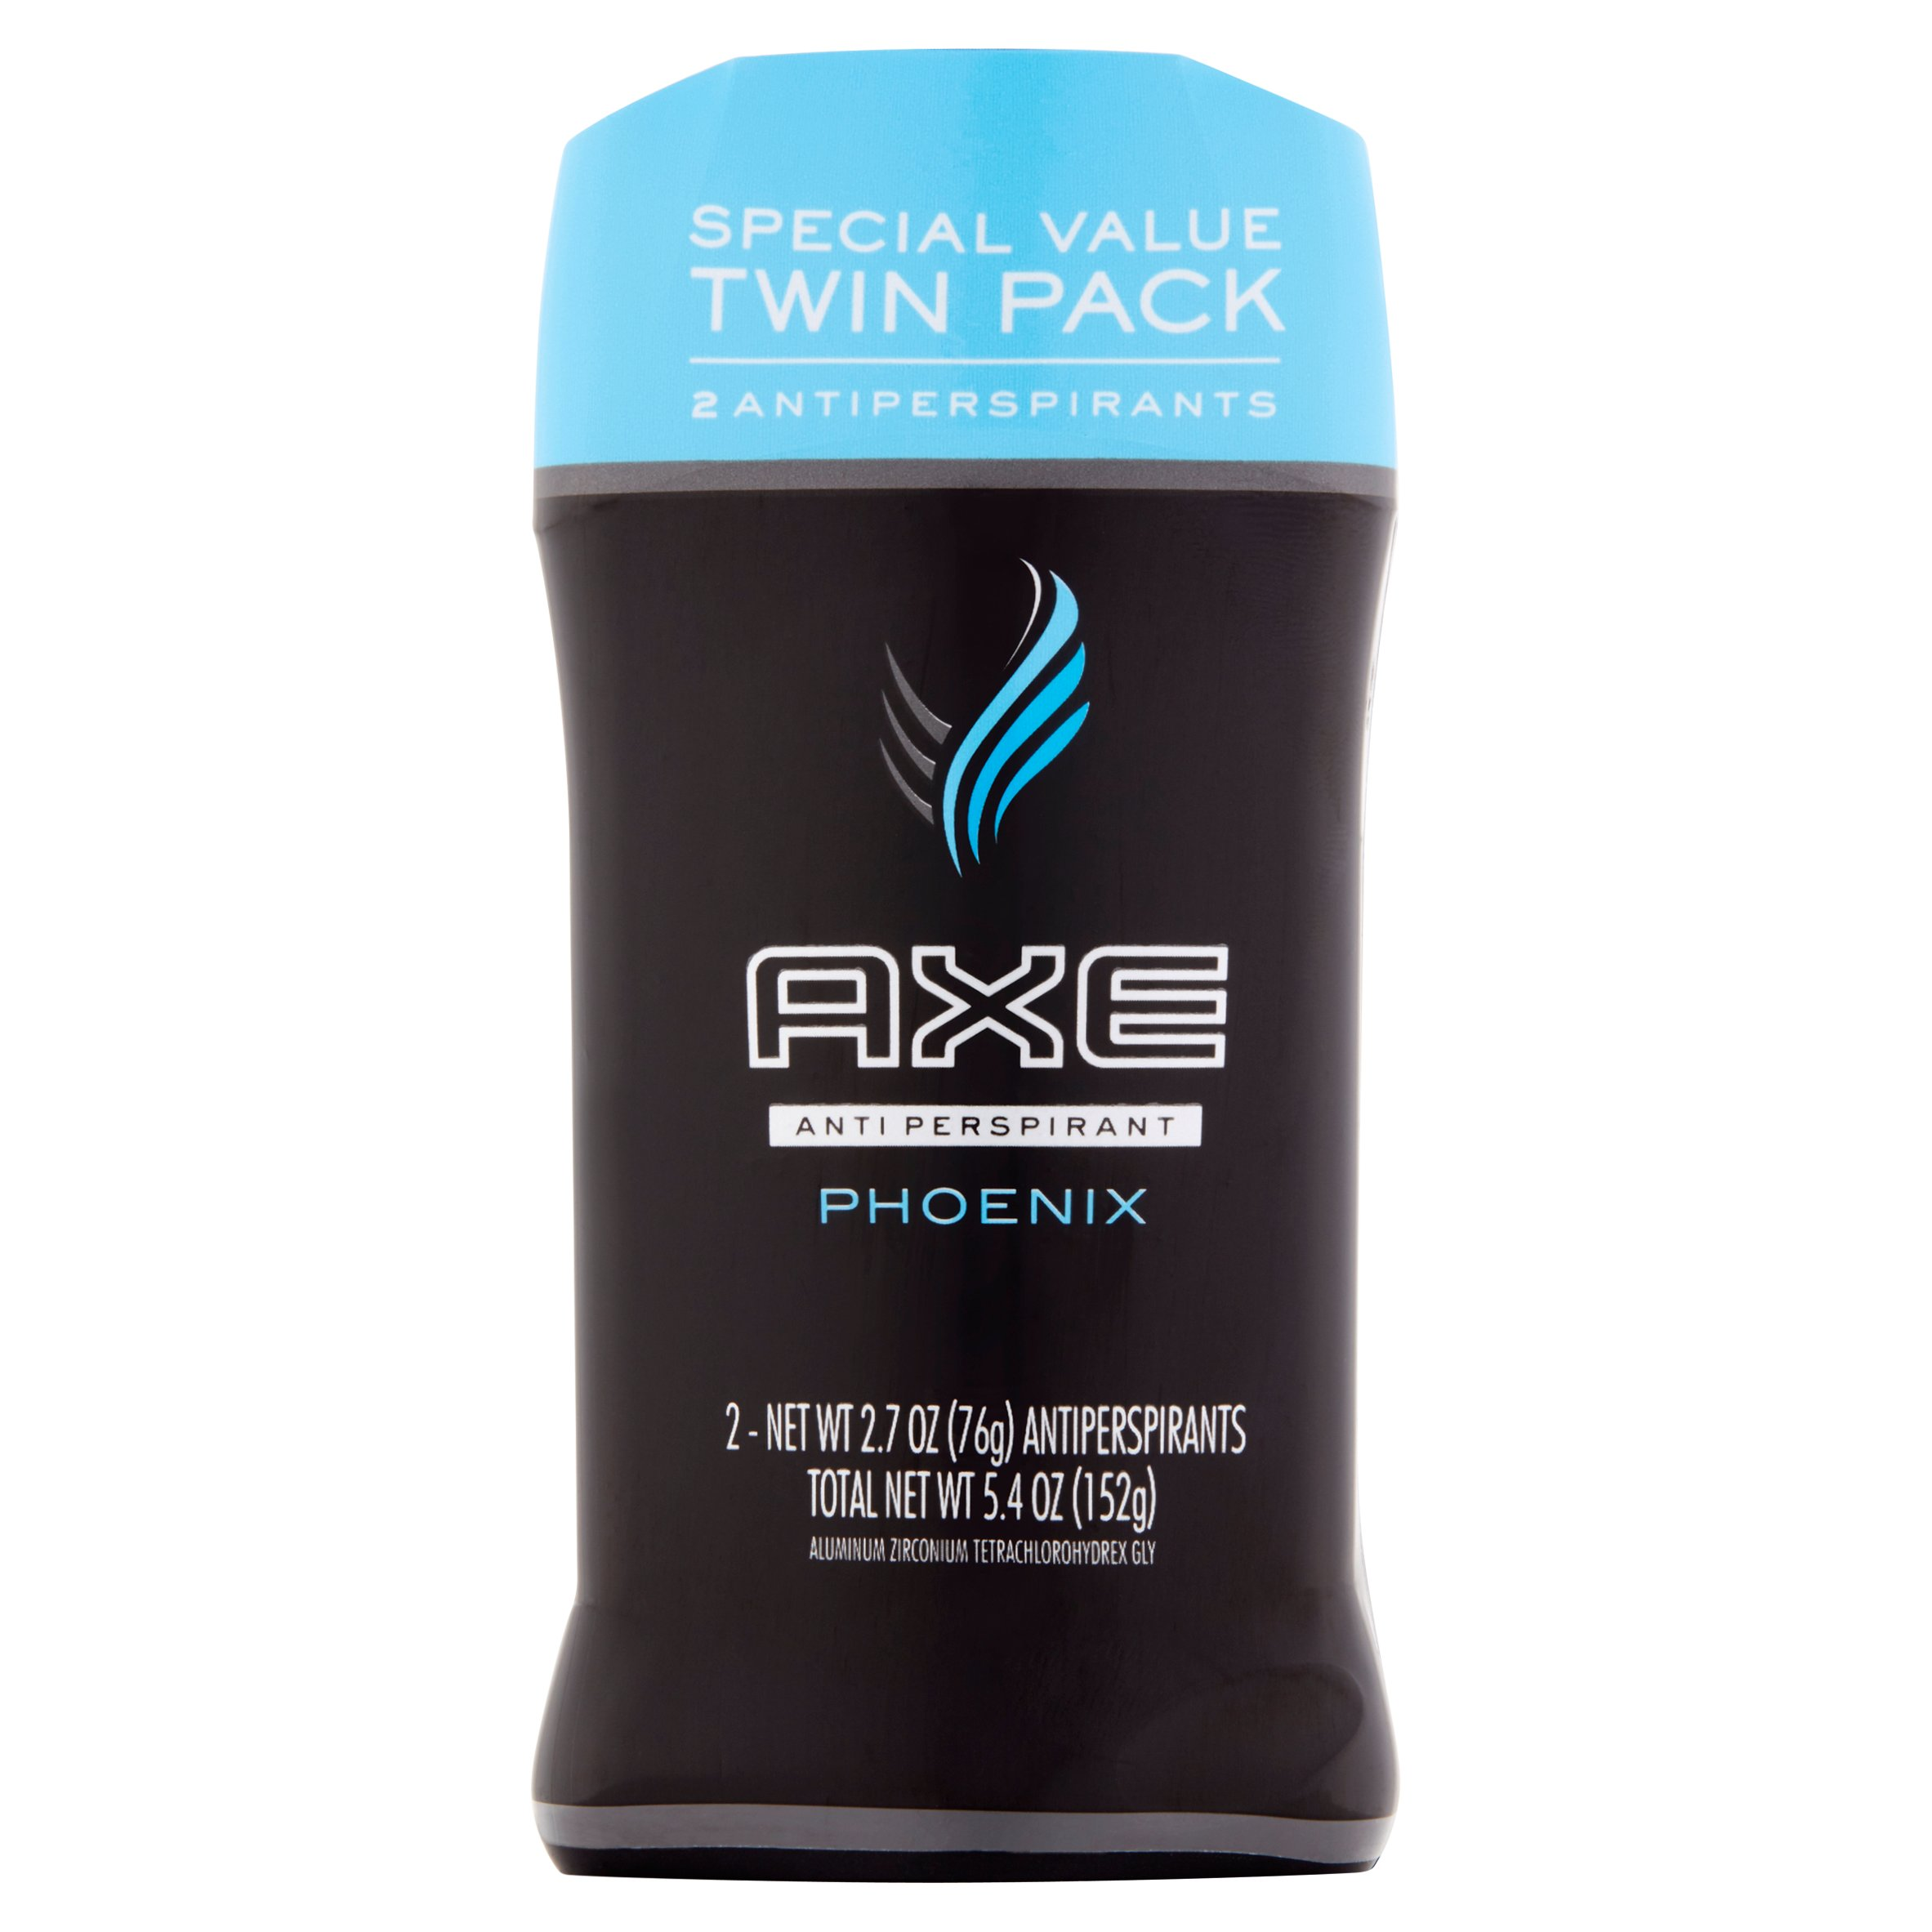 AXE Phoenix Antiperspirant Deodorant Stick for Men 2.7 oz, Twin Pack